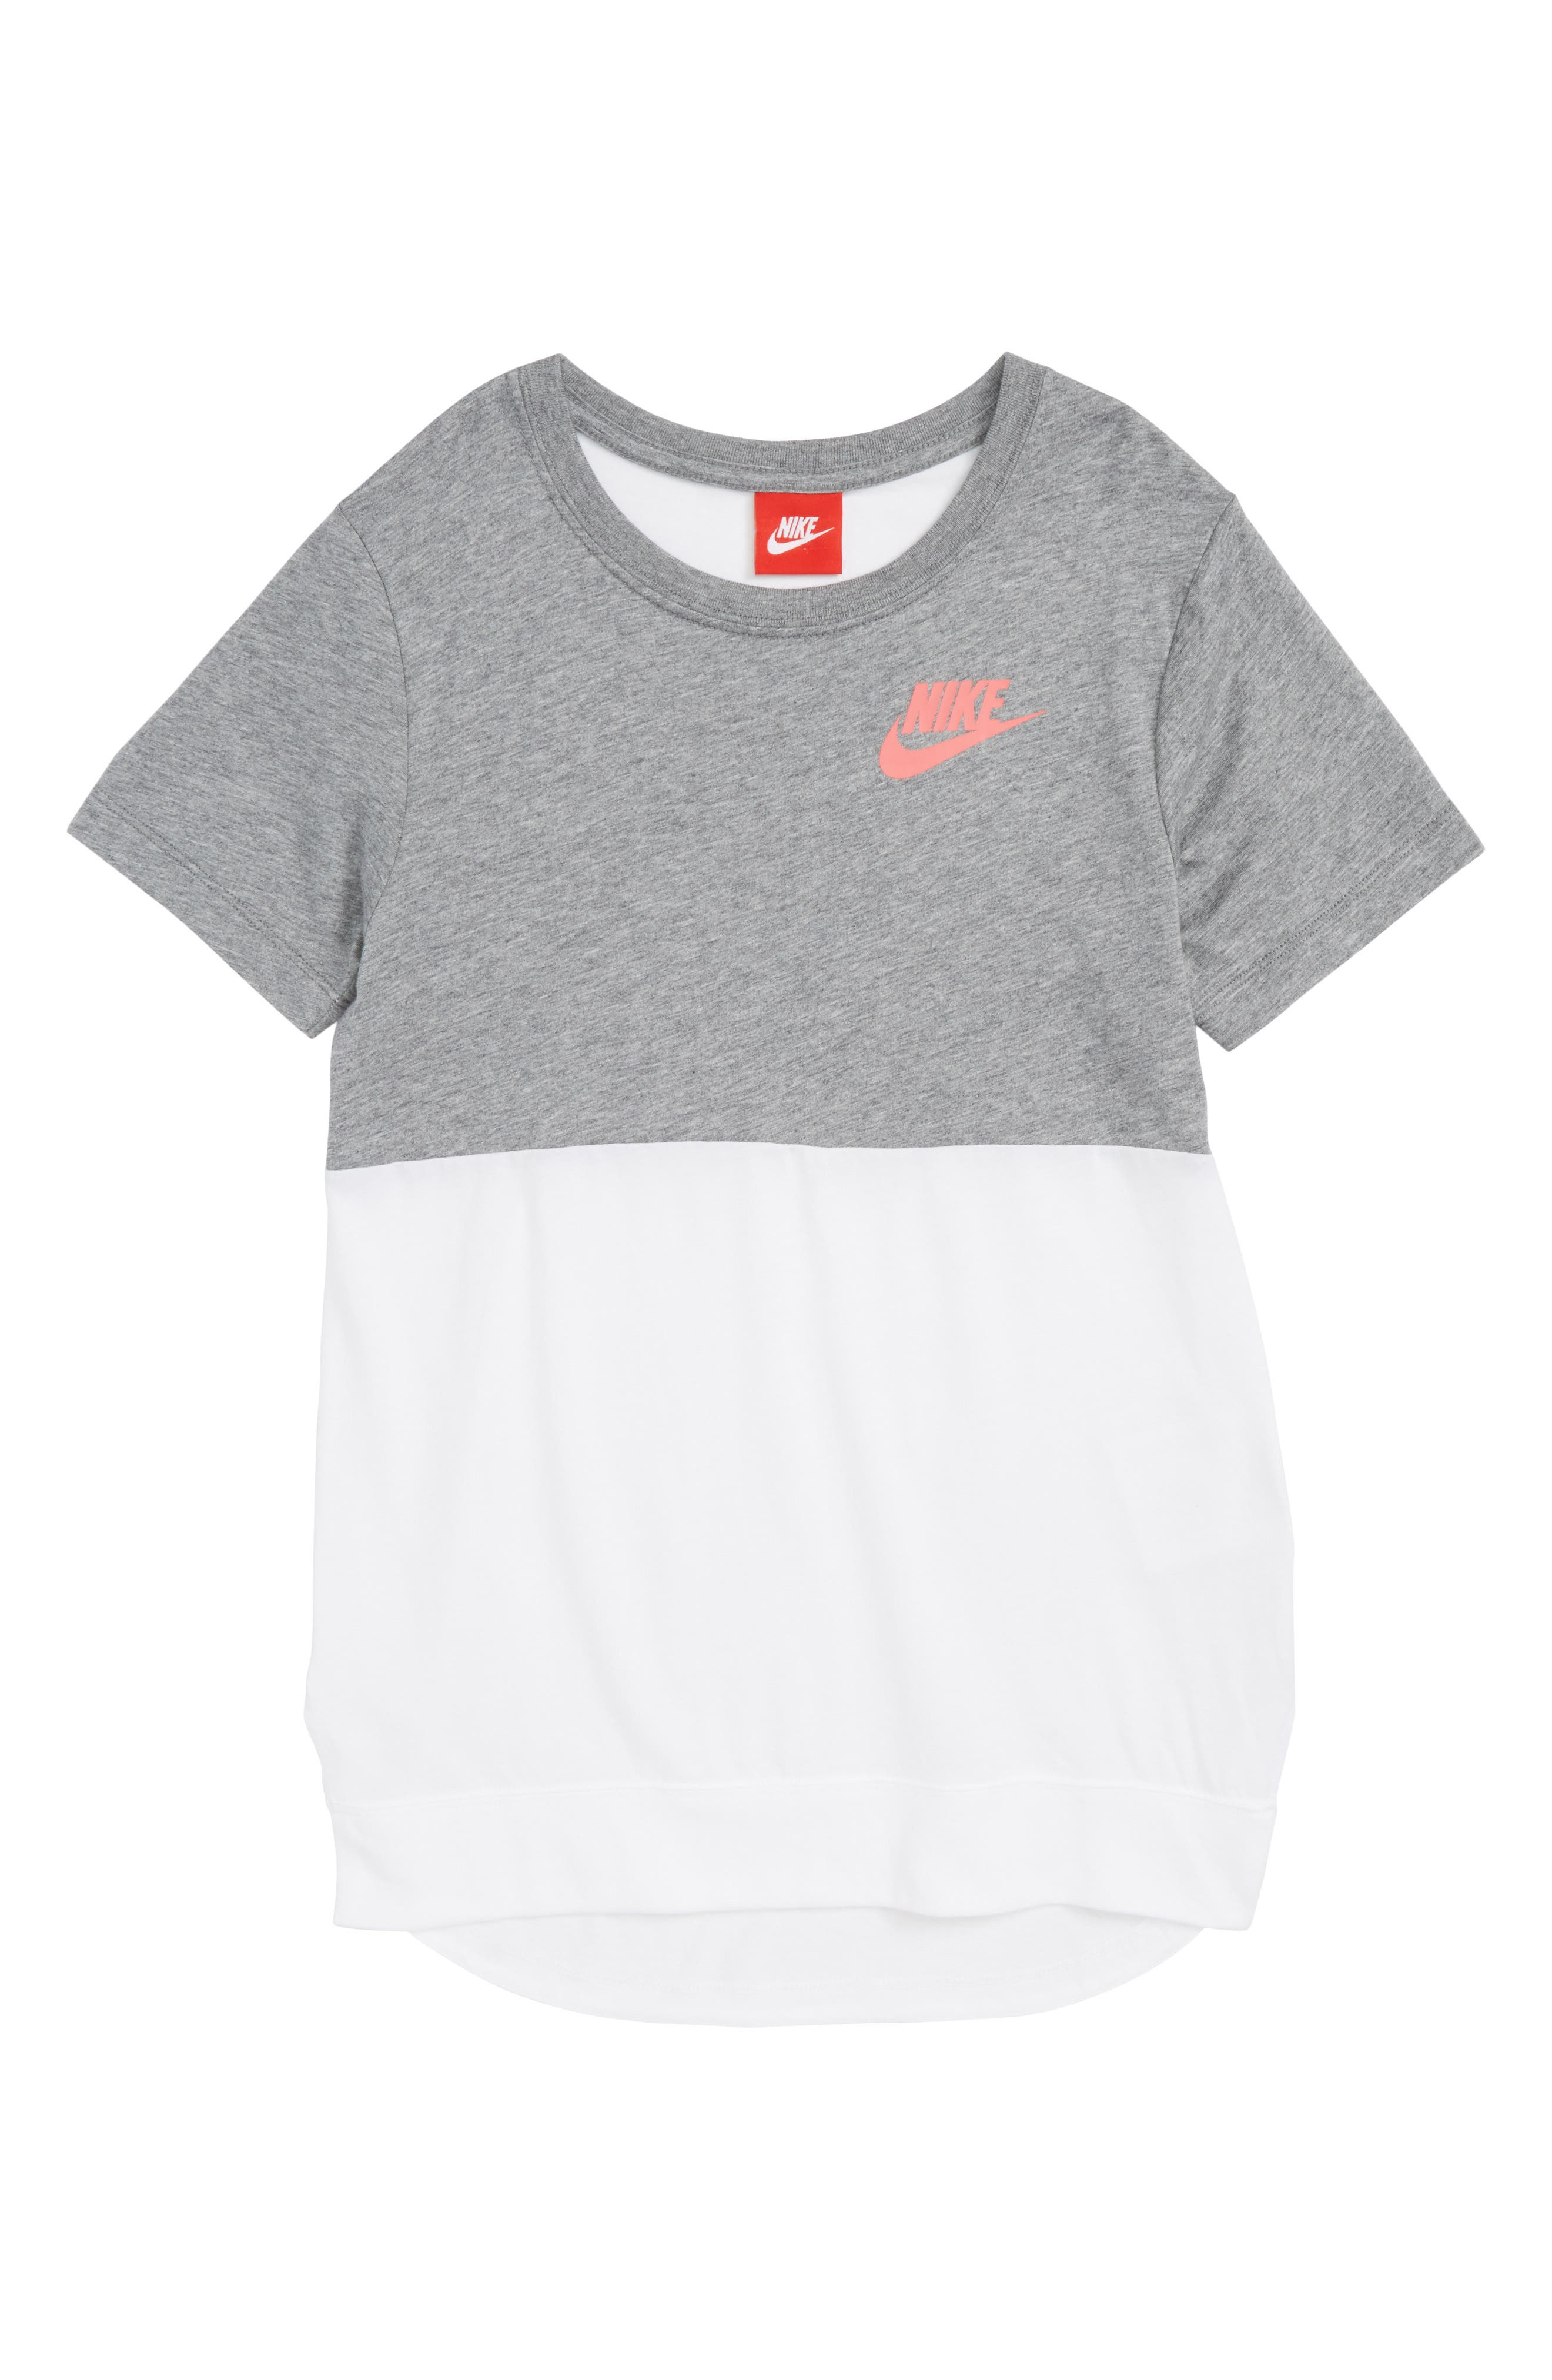 Sportswear Graphic Tee,                         Main,                         color, Carbon Heather/ White/ Coral